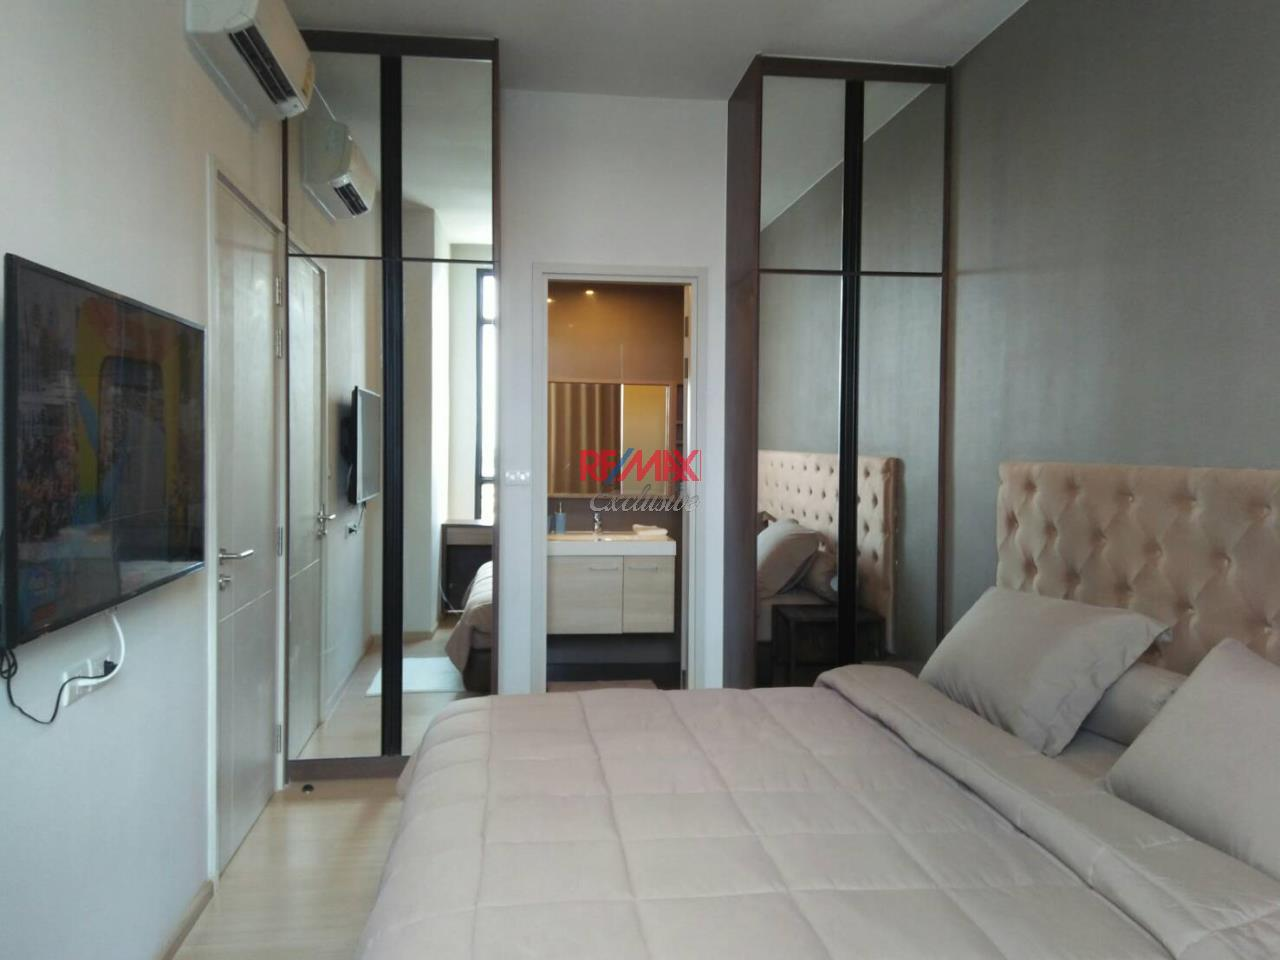 RE/MAX Exclusive Agency's The Capital Ekamai - Thonglor, 2 Bedroom 54 Sqm. for Rent 2